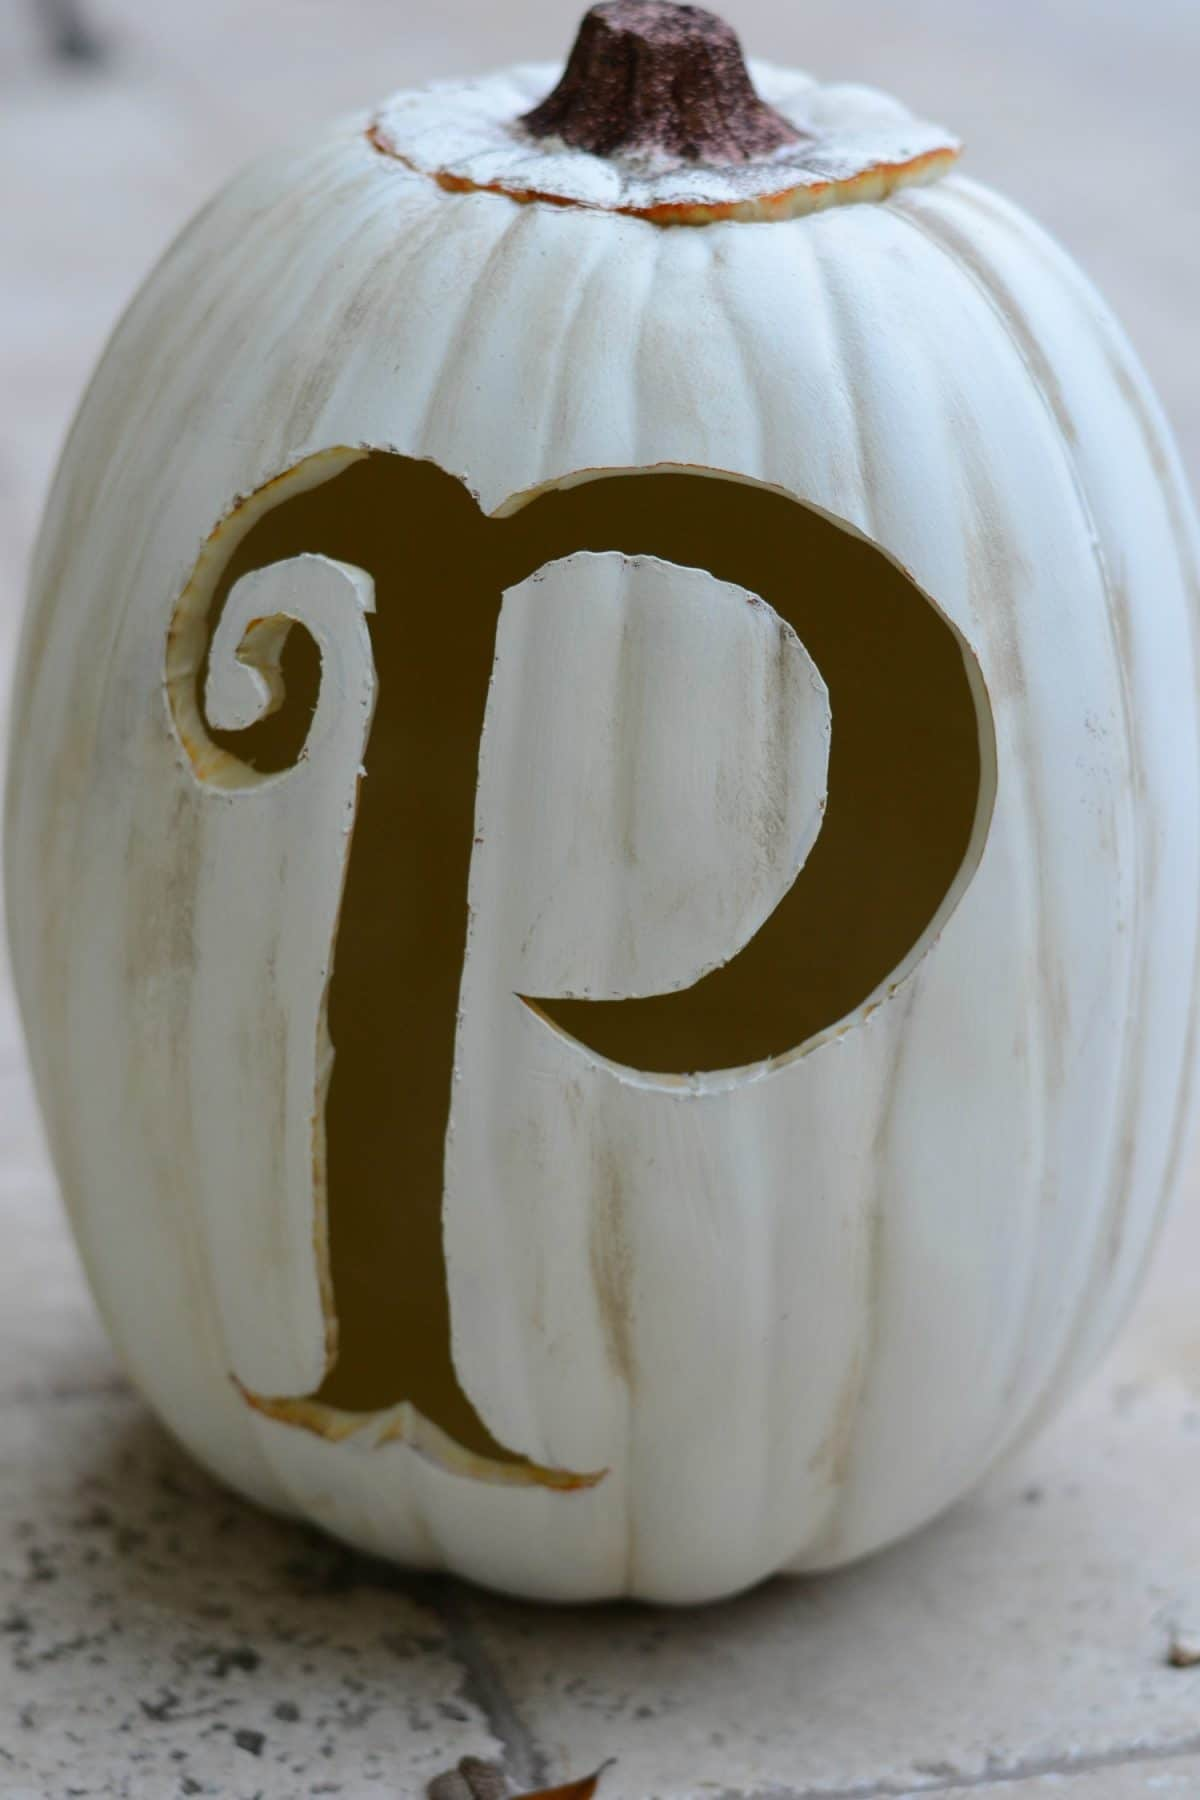 Letter P carved into a large craft pumpkin.